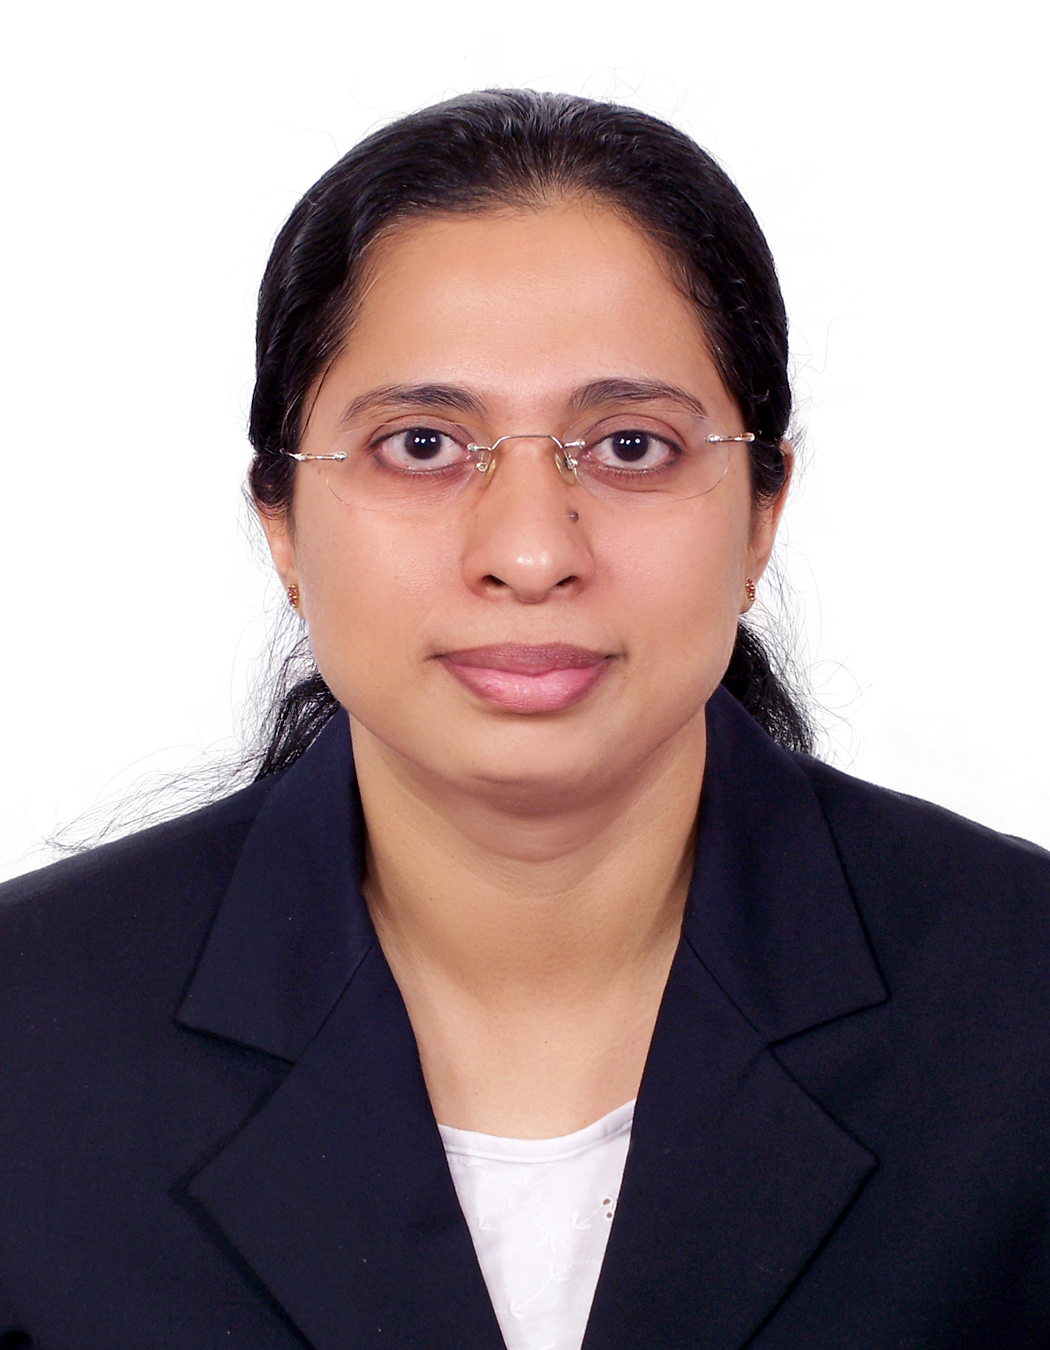 Profile picture of Dr. Anna Jacob